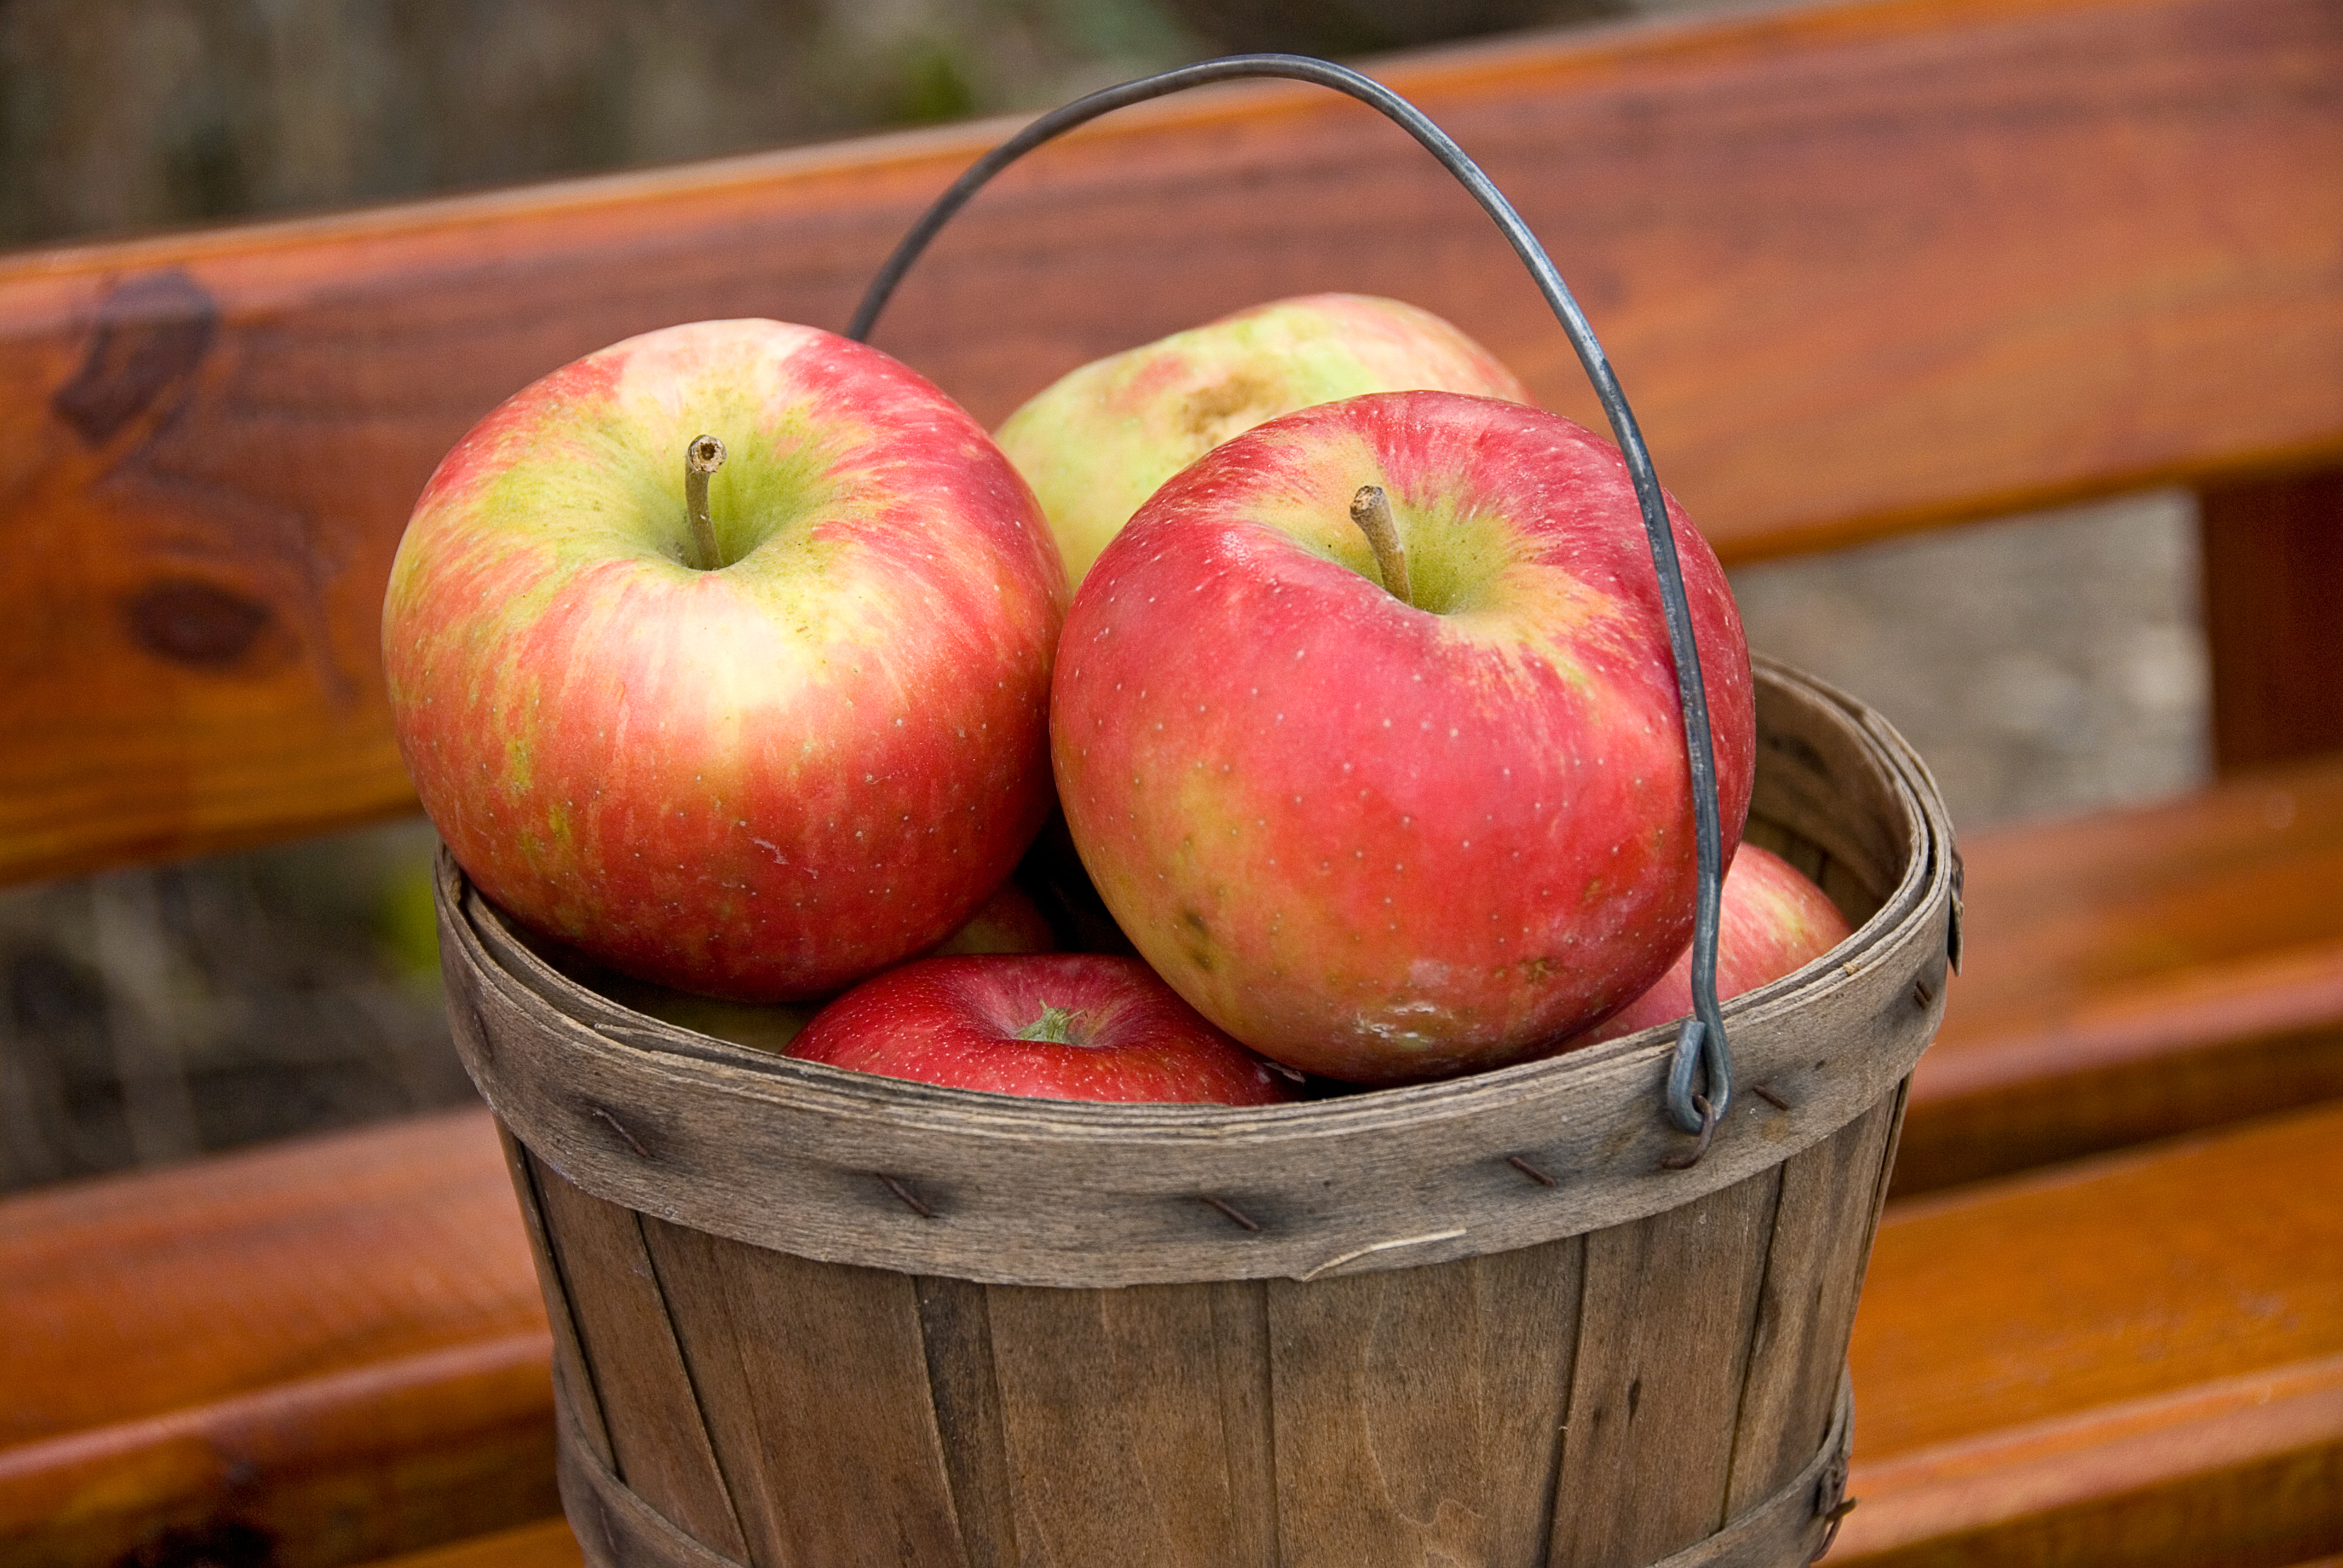 A peck of apples weighs 10.5 pounds.